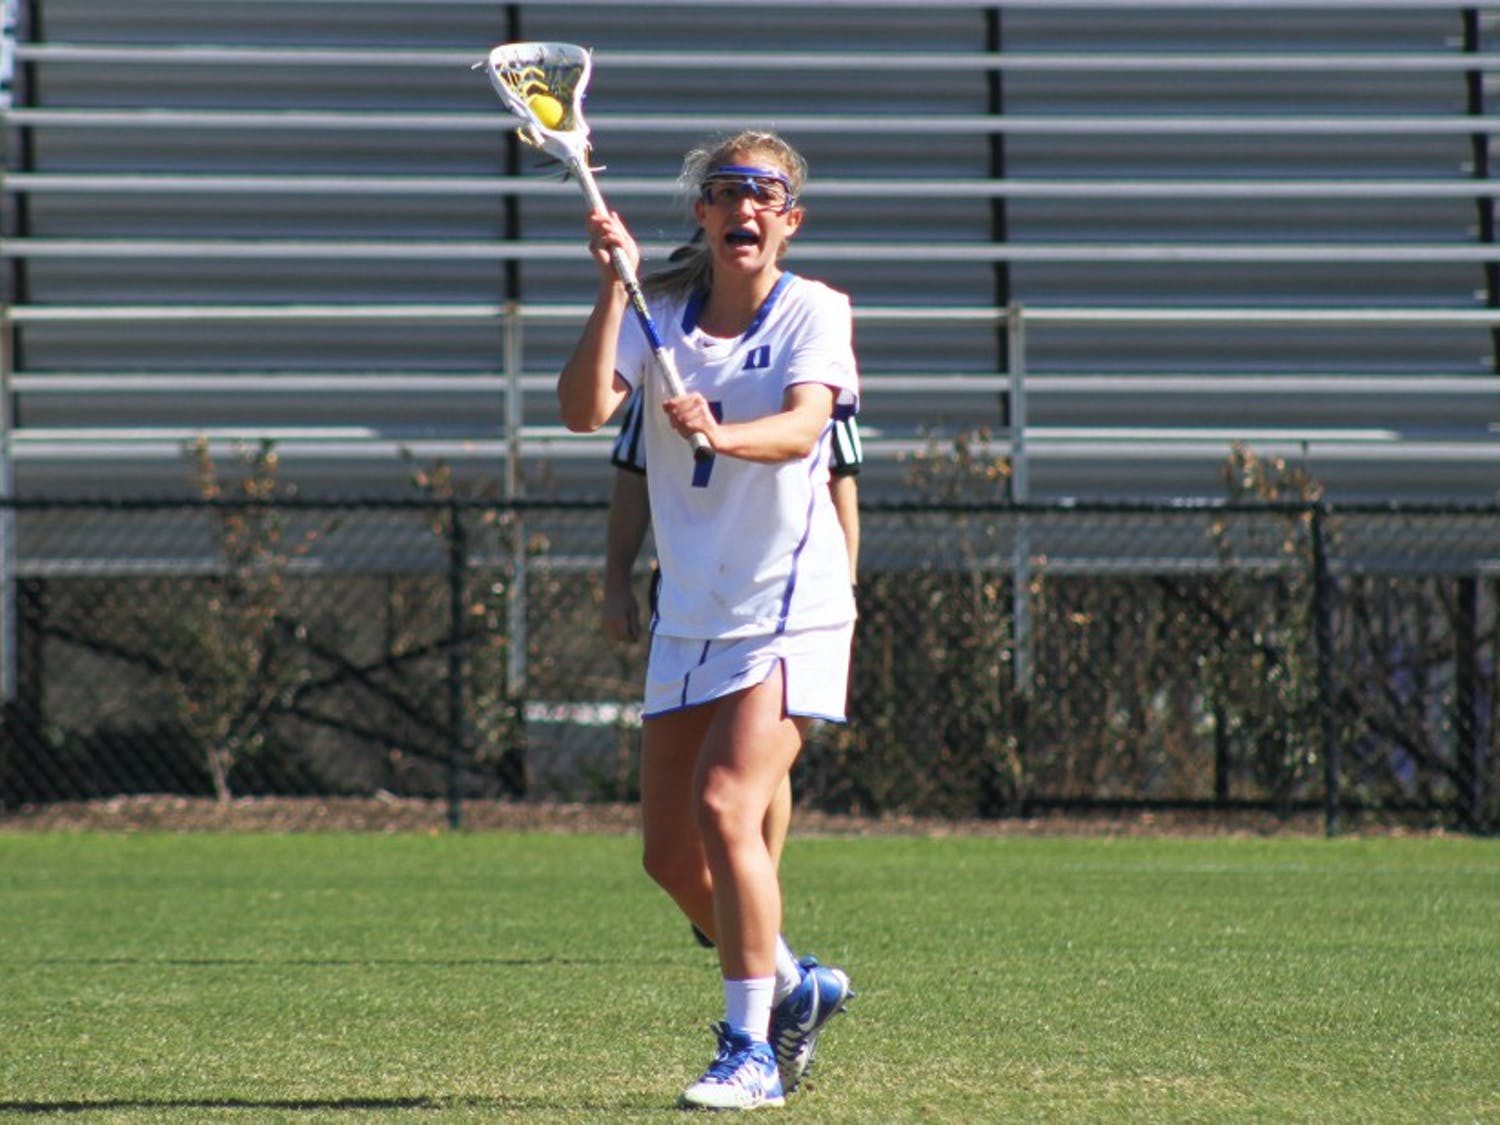 Senior Maddy Acton netted a hat trick Sunday as No. 12 Duke beat No. 16 Pennsylvania.